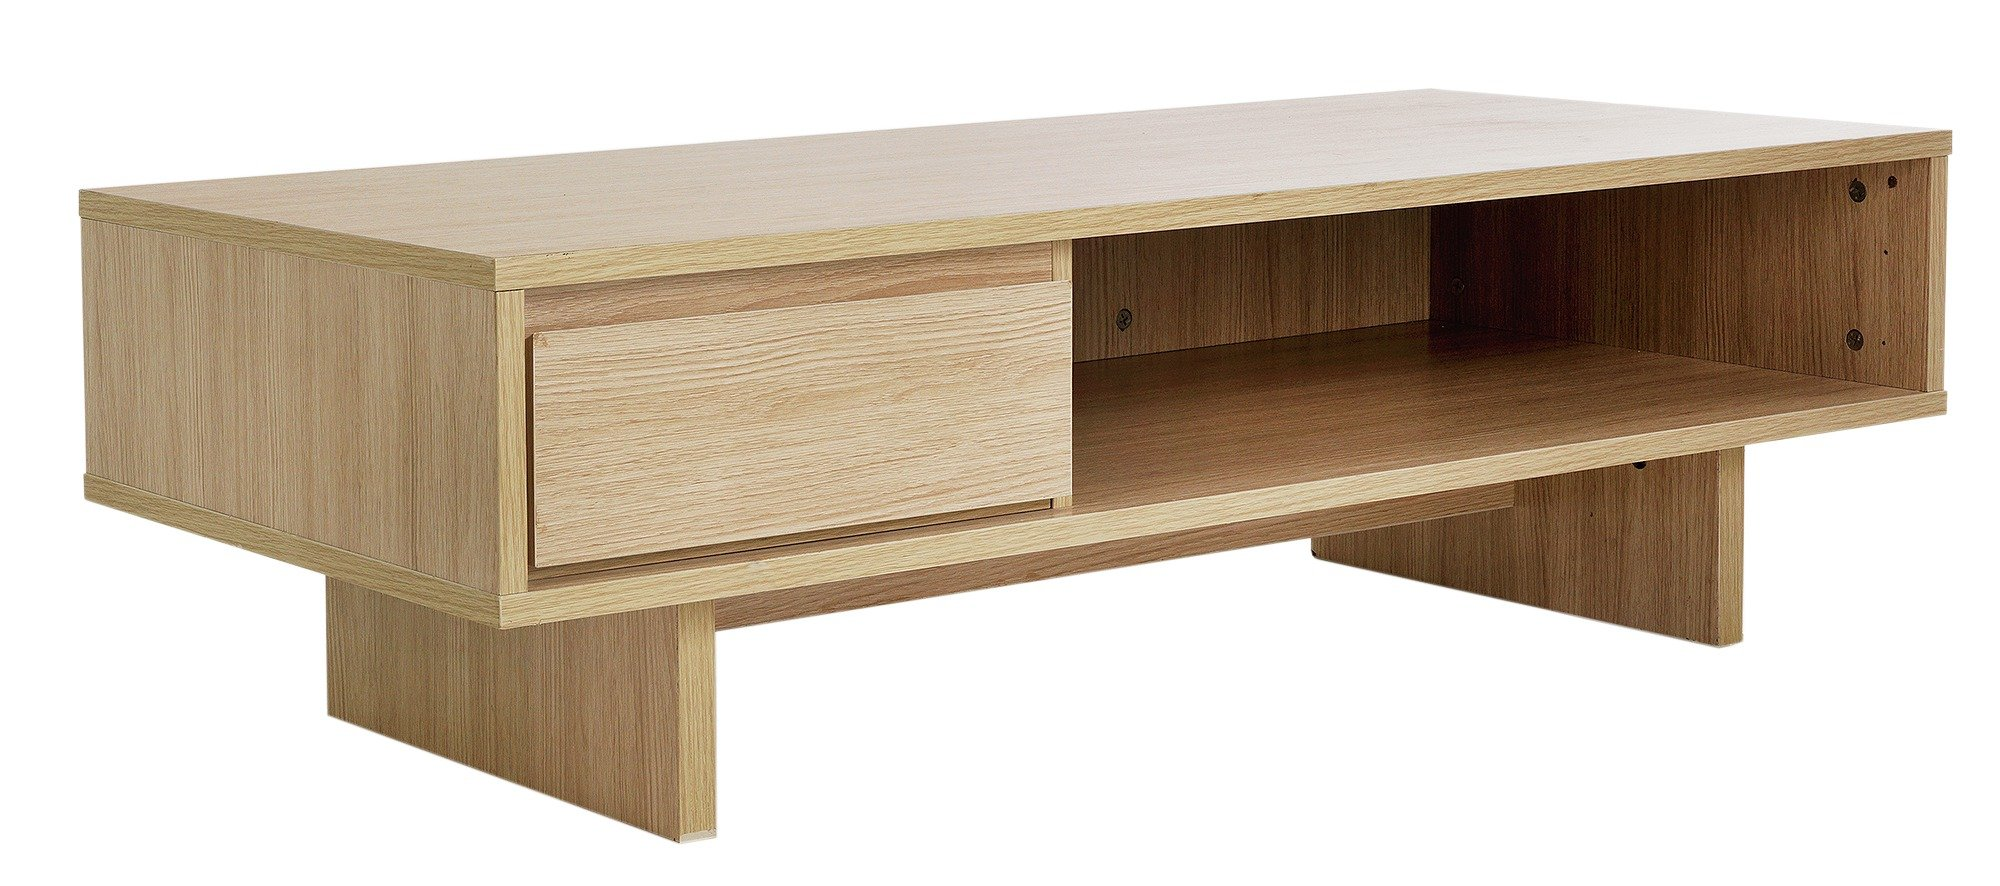 Argos coffee tables furniture sales today for Sofa table argos